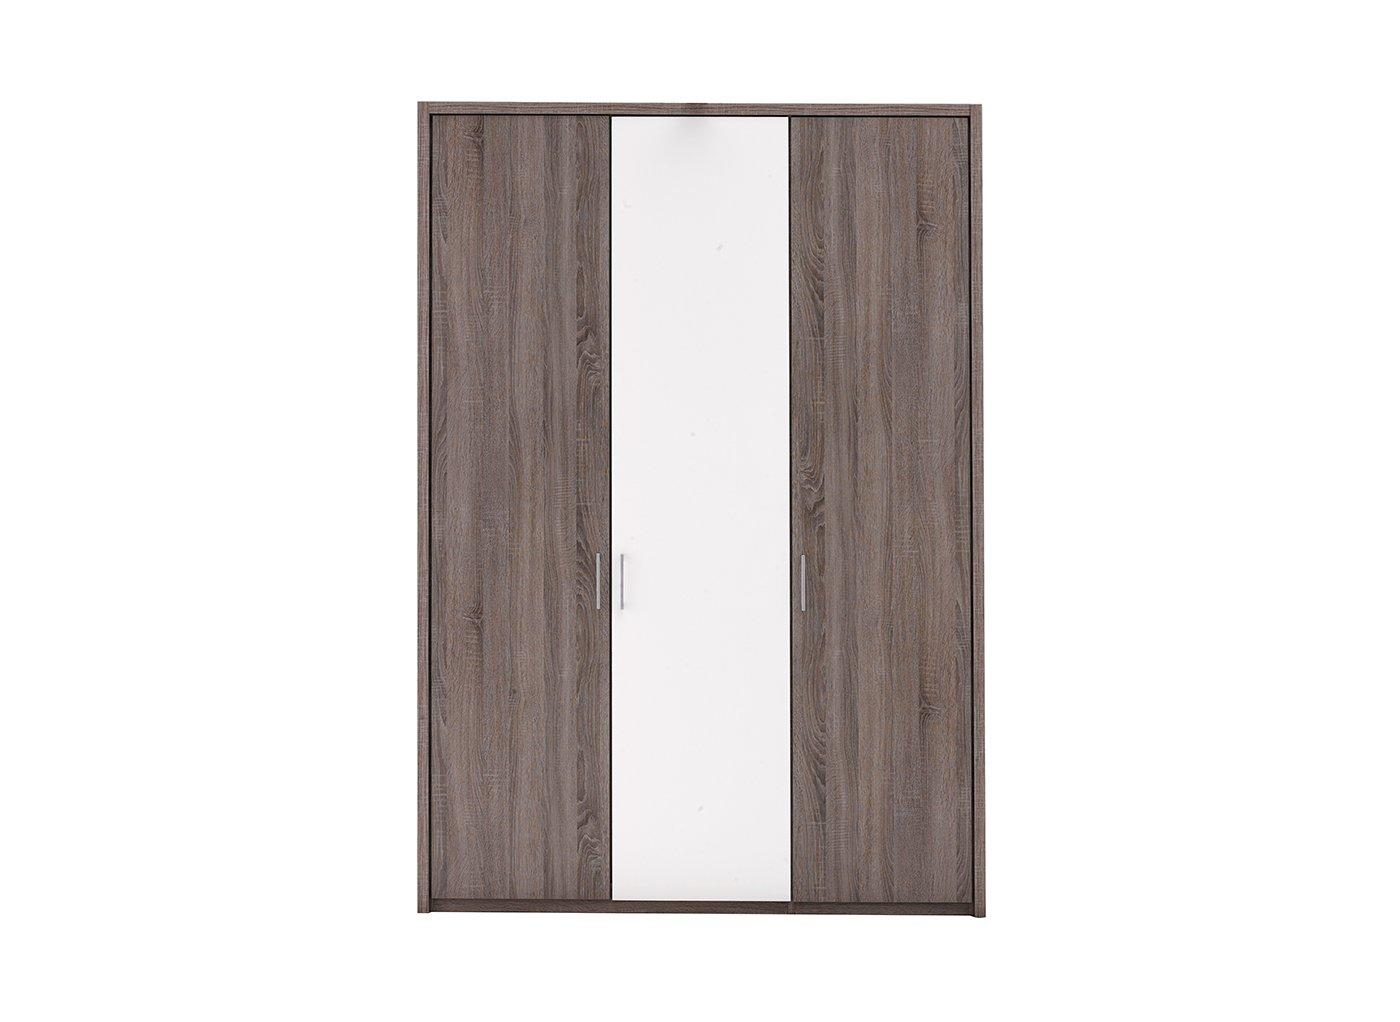 Melbourne 3 Door Hinged Wardrobe – Oak & White (£599)